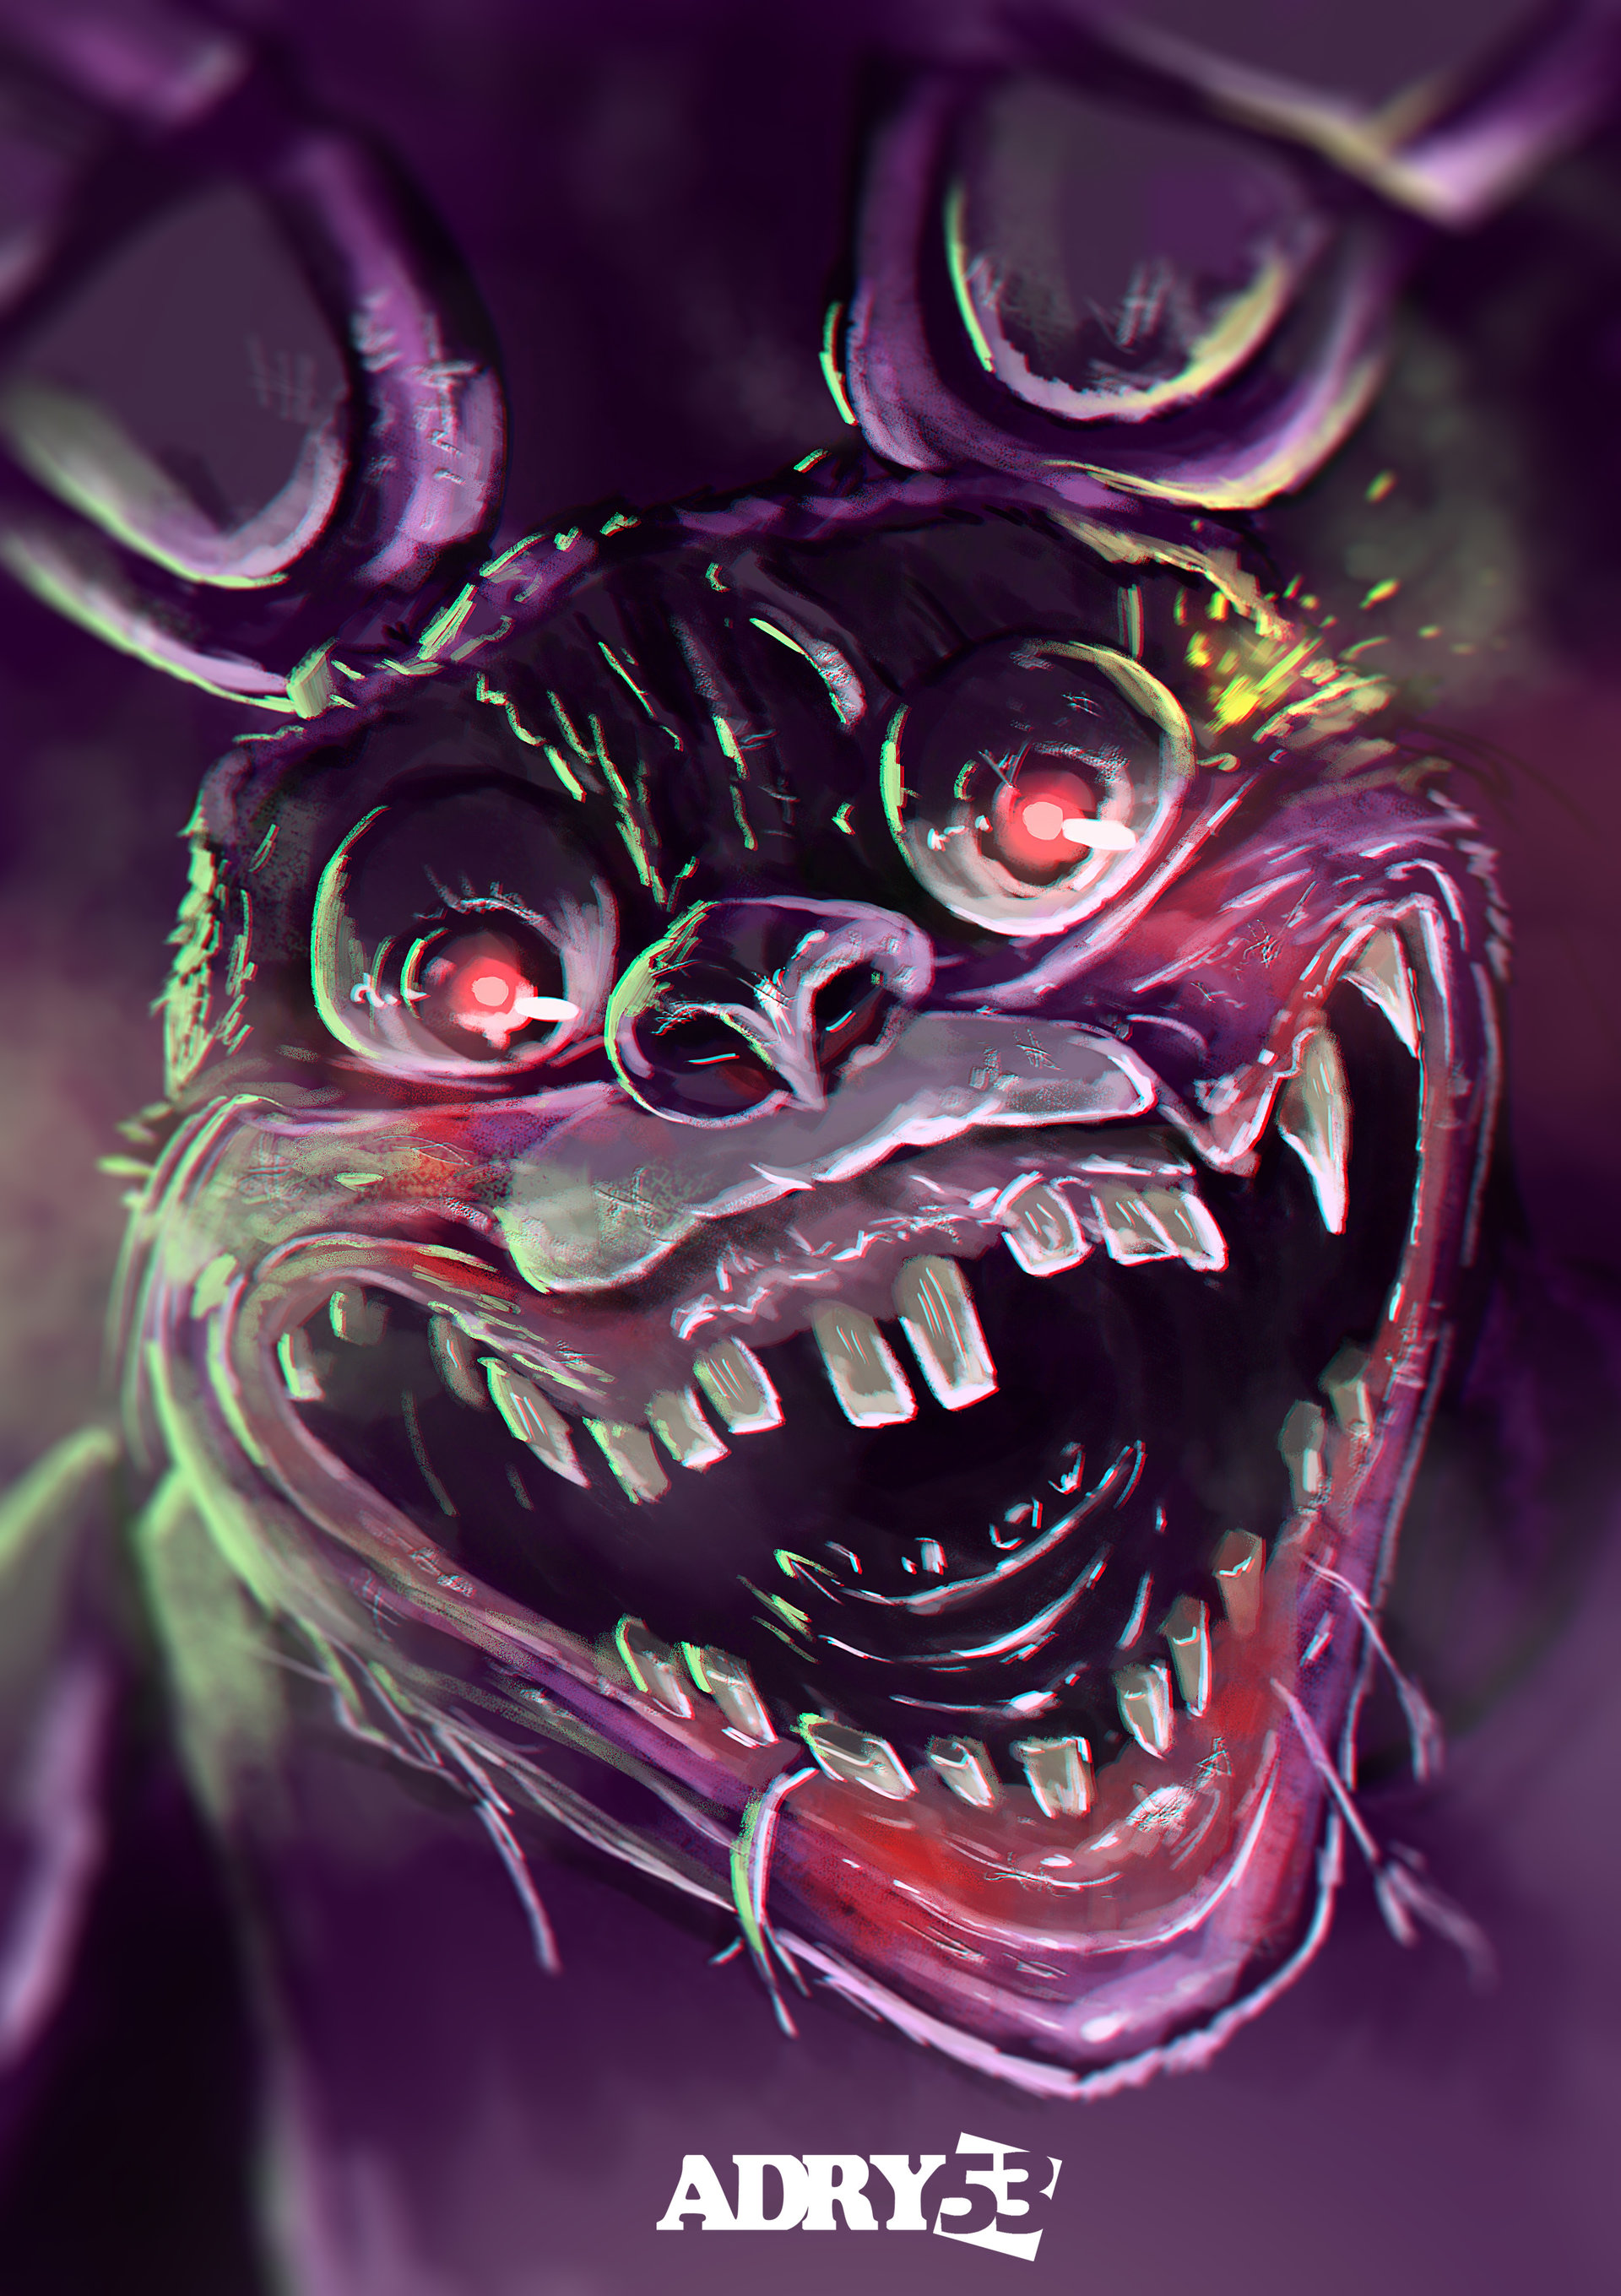 timothy adry withered bonnie